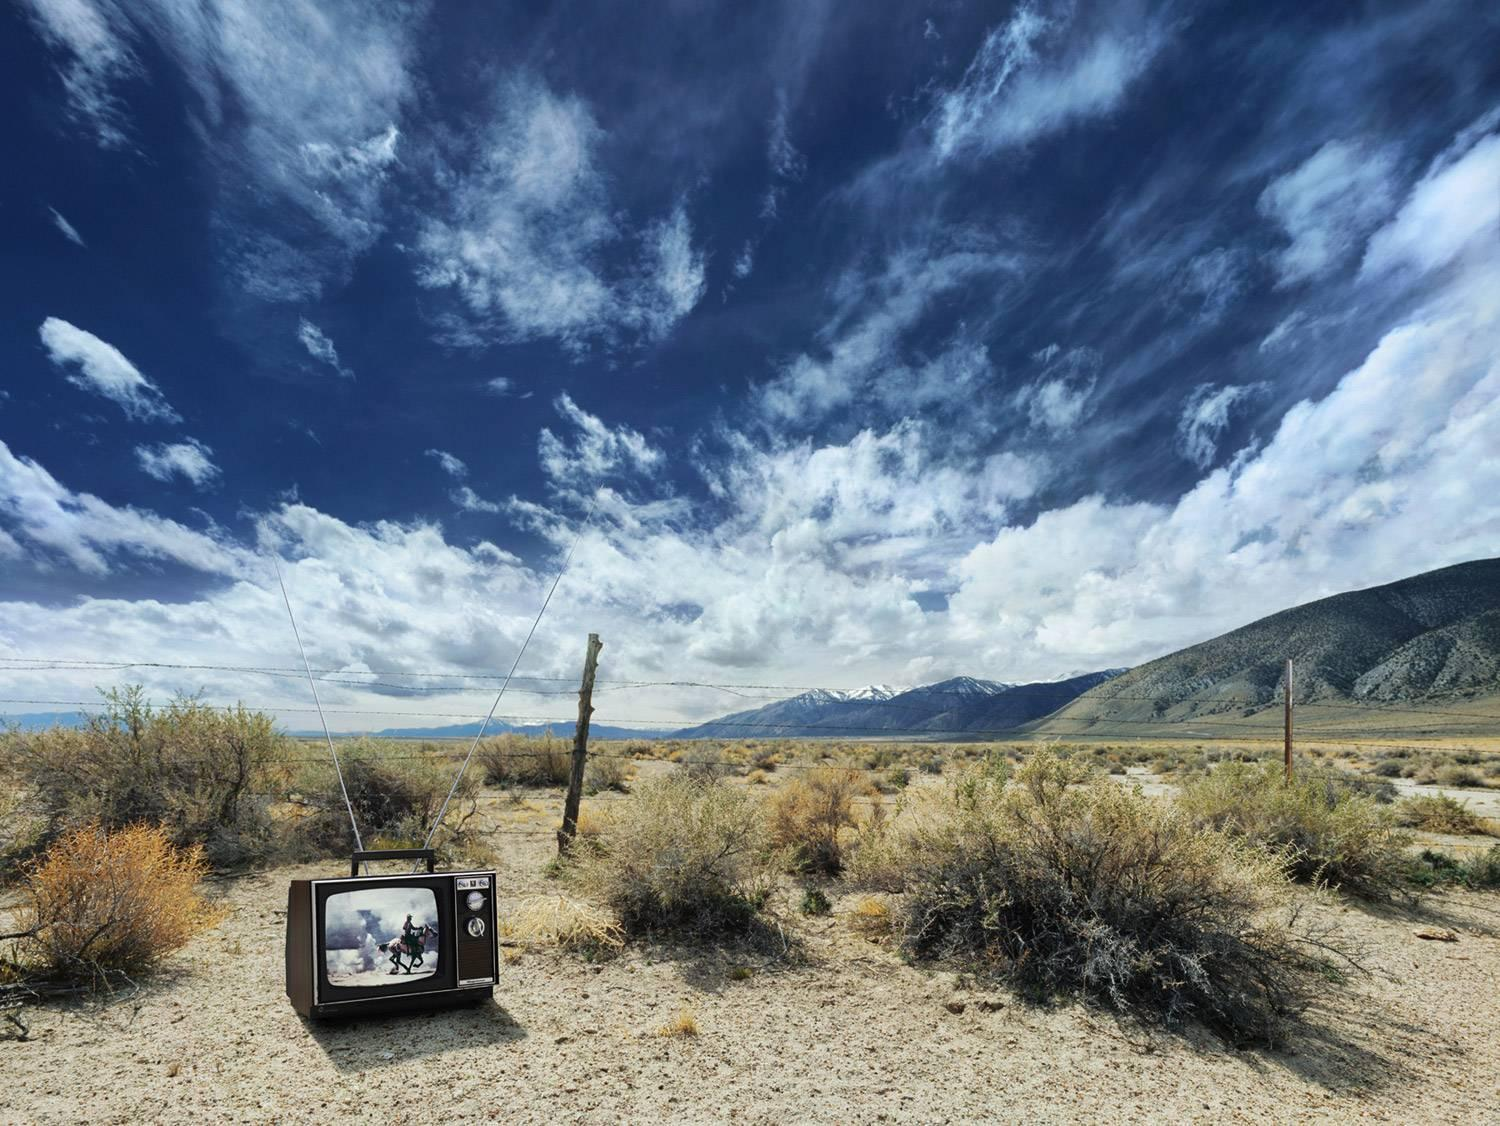 Cowboy TV - large format photograph of iconic western in American landscape